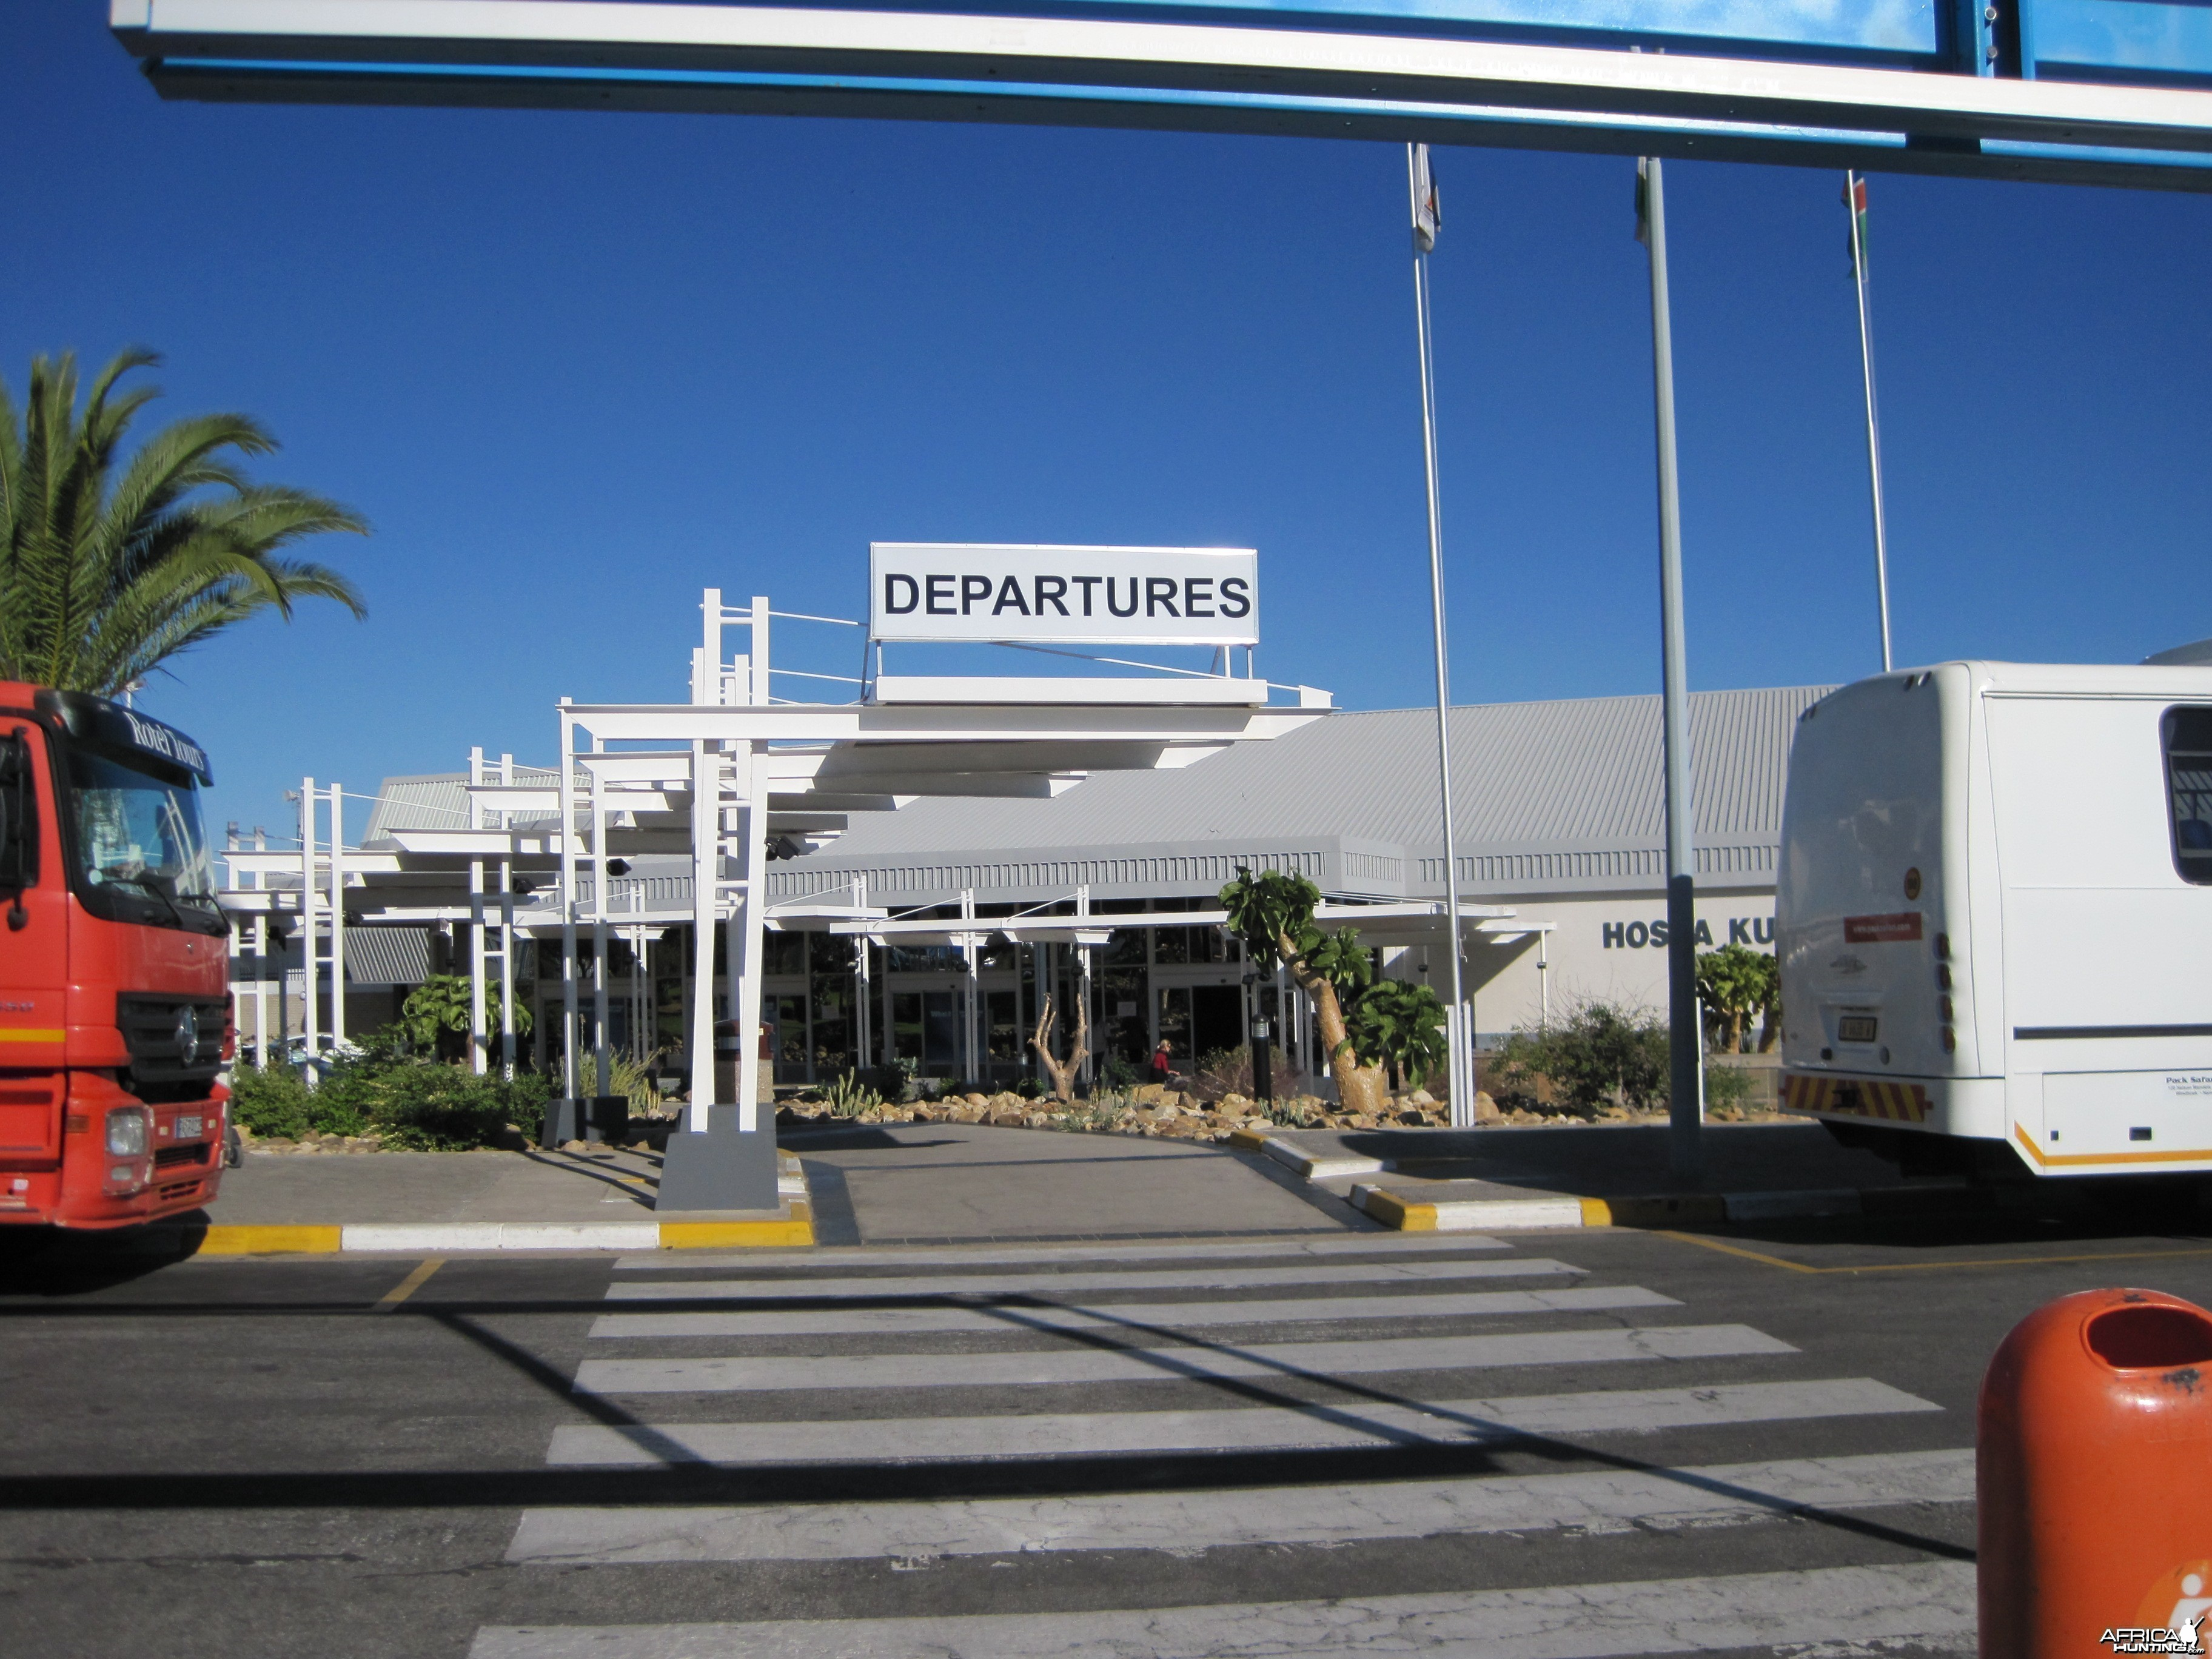 Departures at the International Airport in Windhoek, Namibia